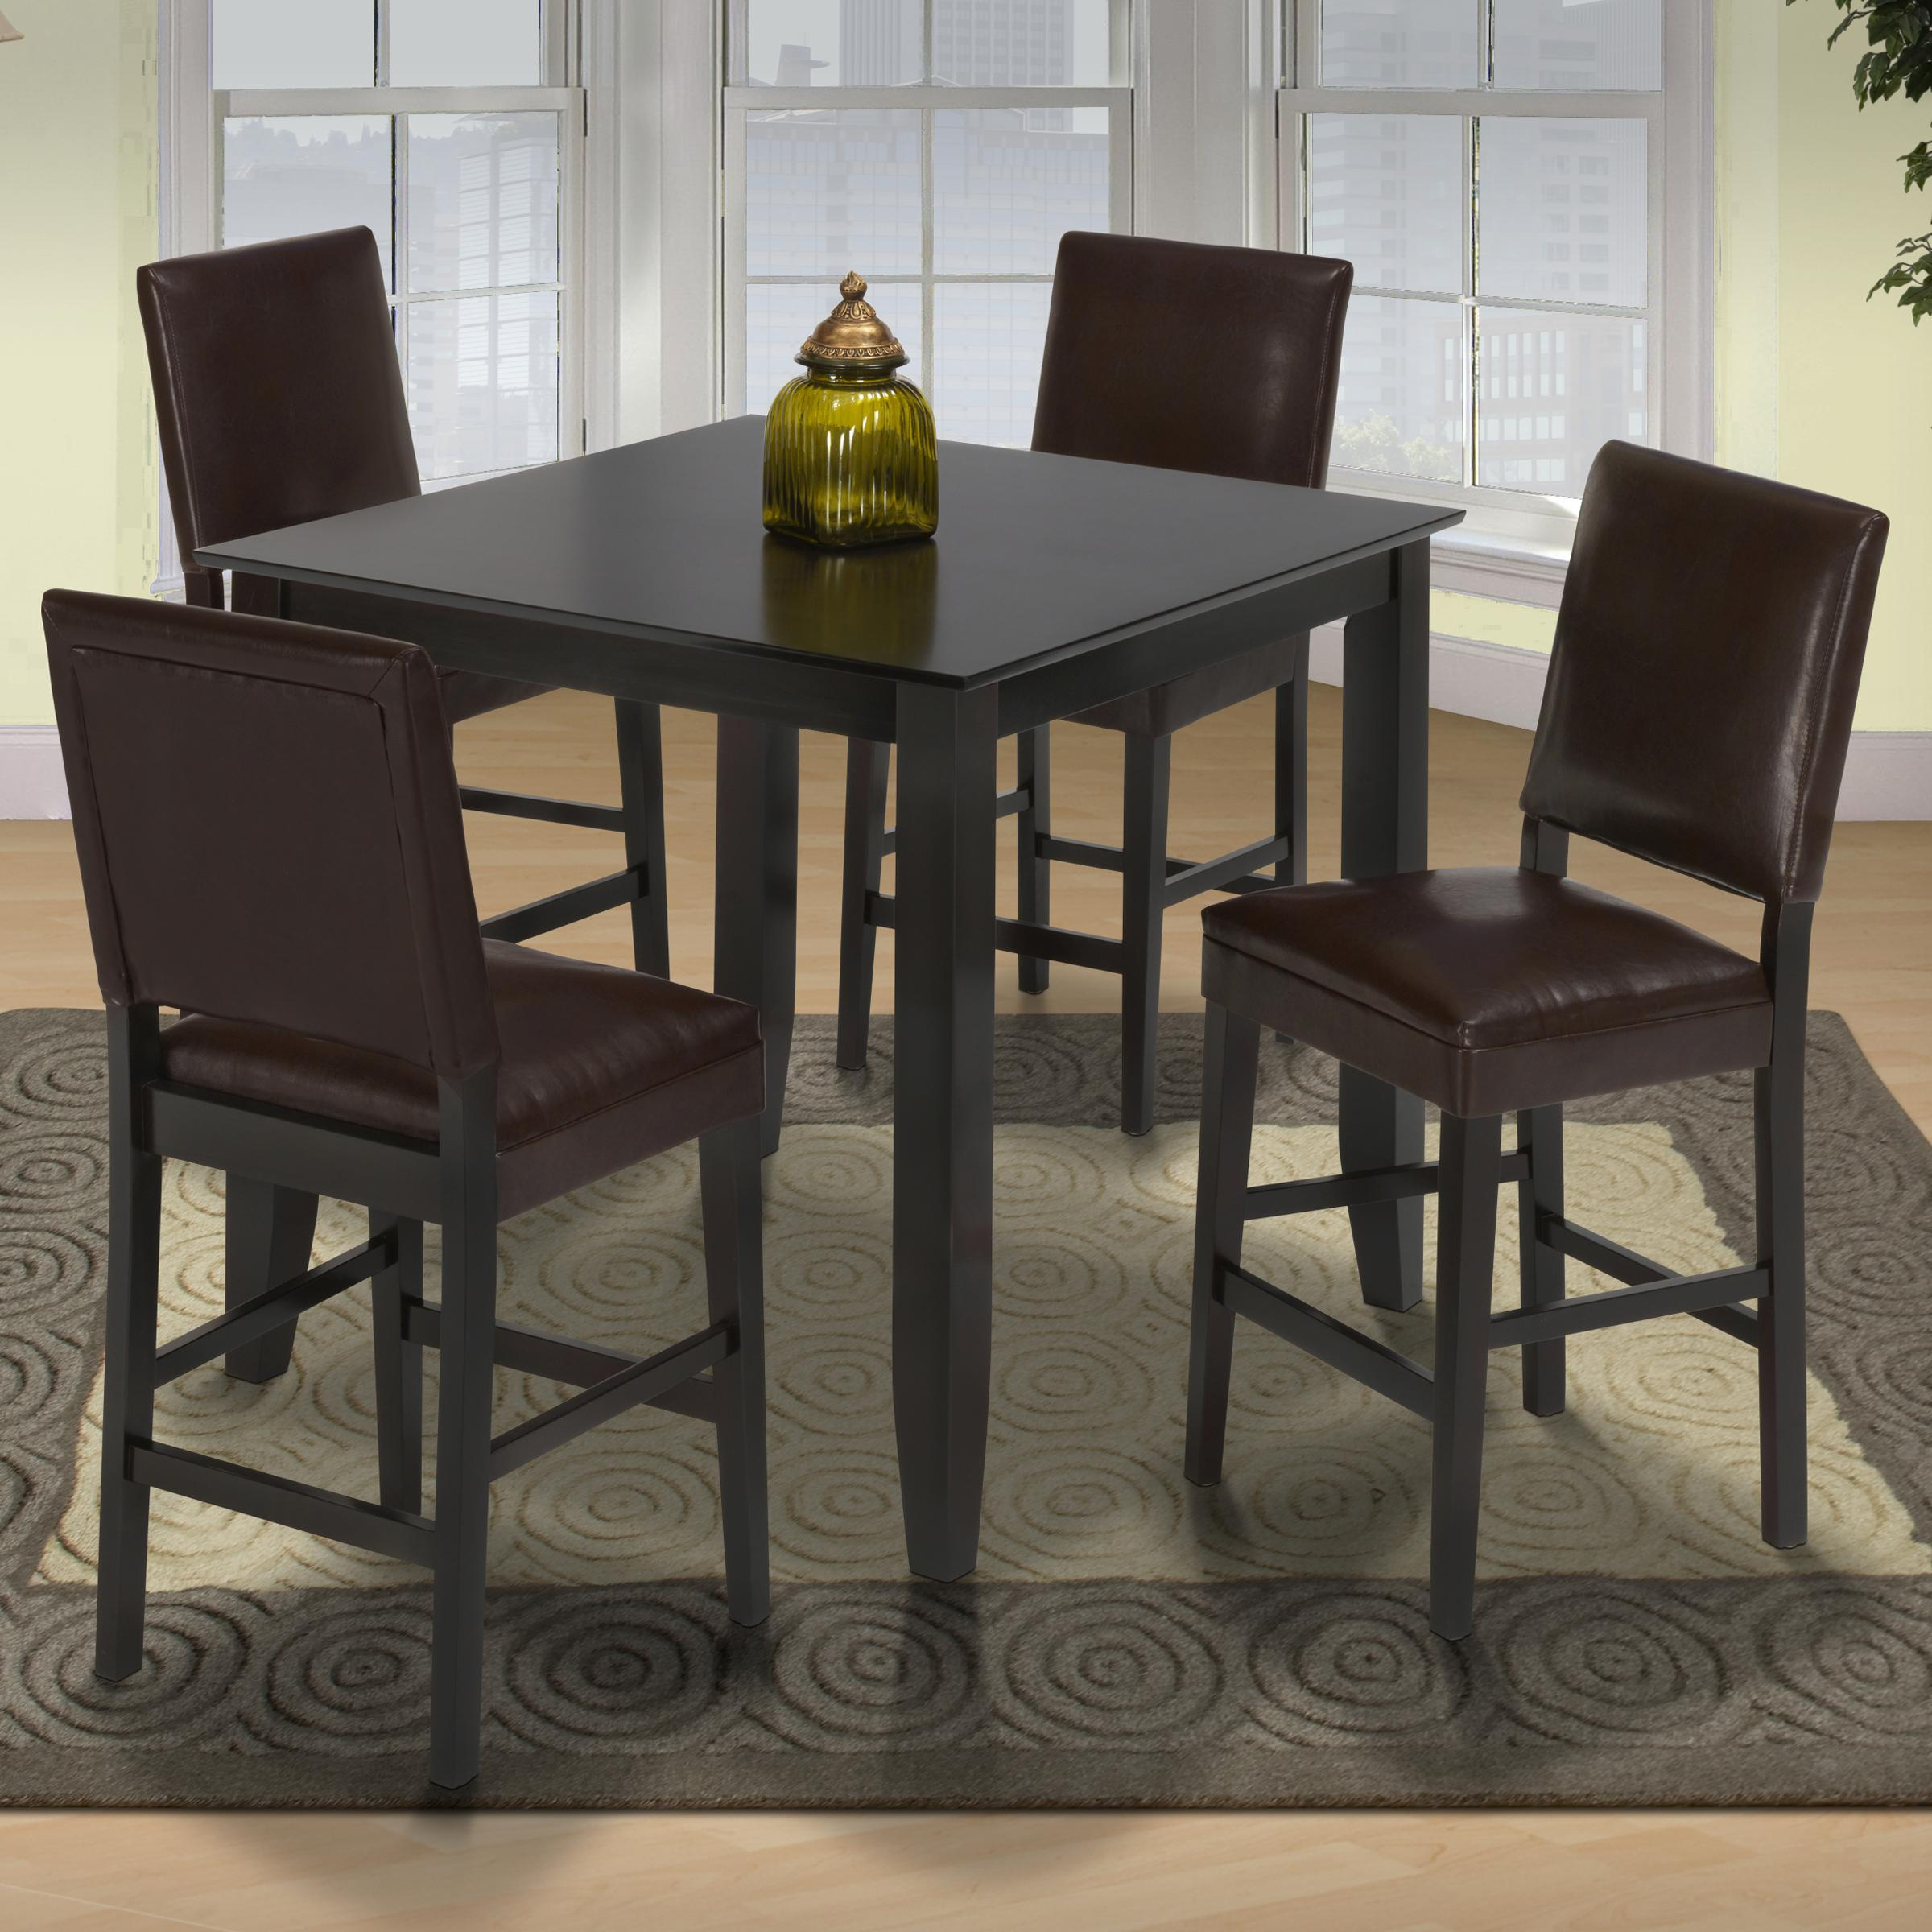 New Classic Style 19 Pub Height Table and Upholstered Chairs - Item Number 04- & New Classic Style 19 Small Pub Table and Upholstered Chairs ...